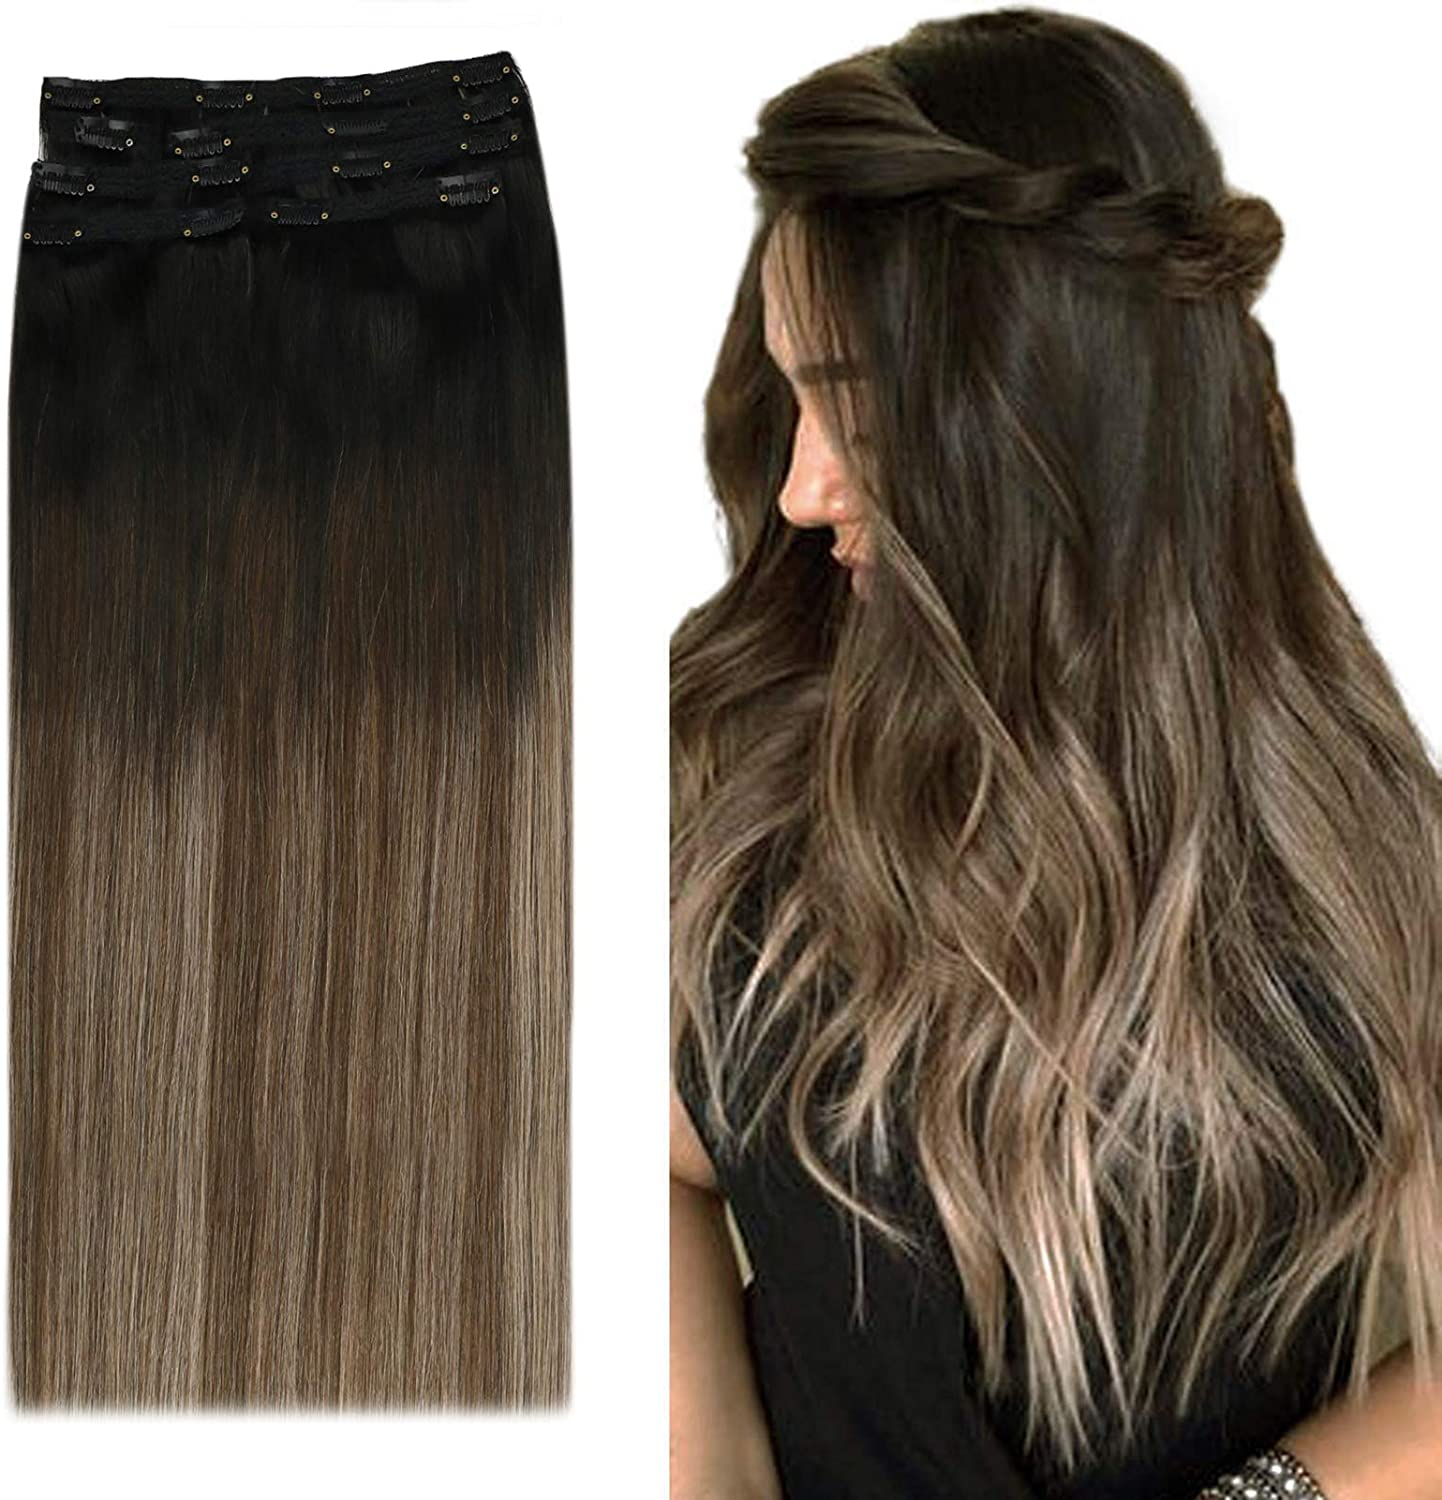 YoungSee 12inch Clip in Human Hair Extensions Balayage Remy Clip on Extensions